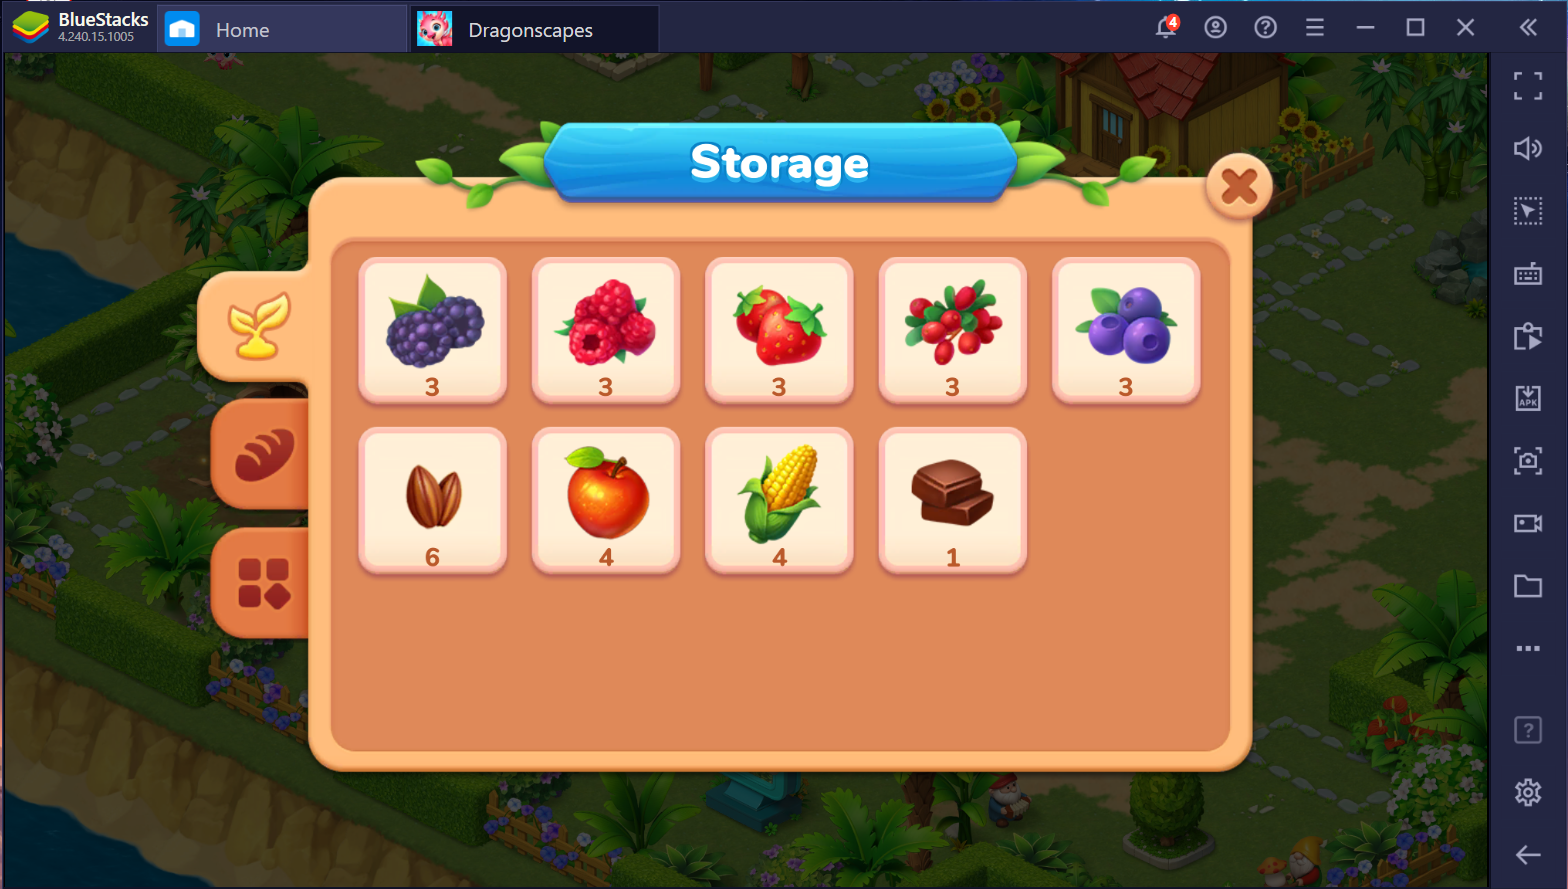 Dragonscapes Adventure on PC with BlueStacks: A Fun and Relaxing Game with Dragons!